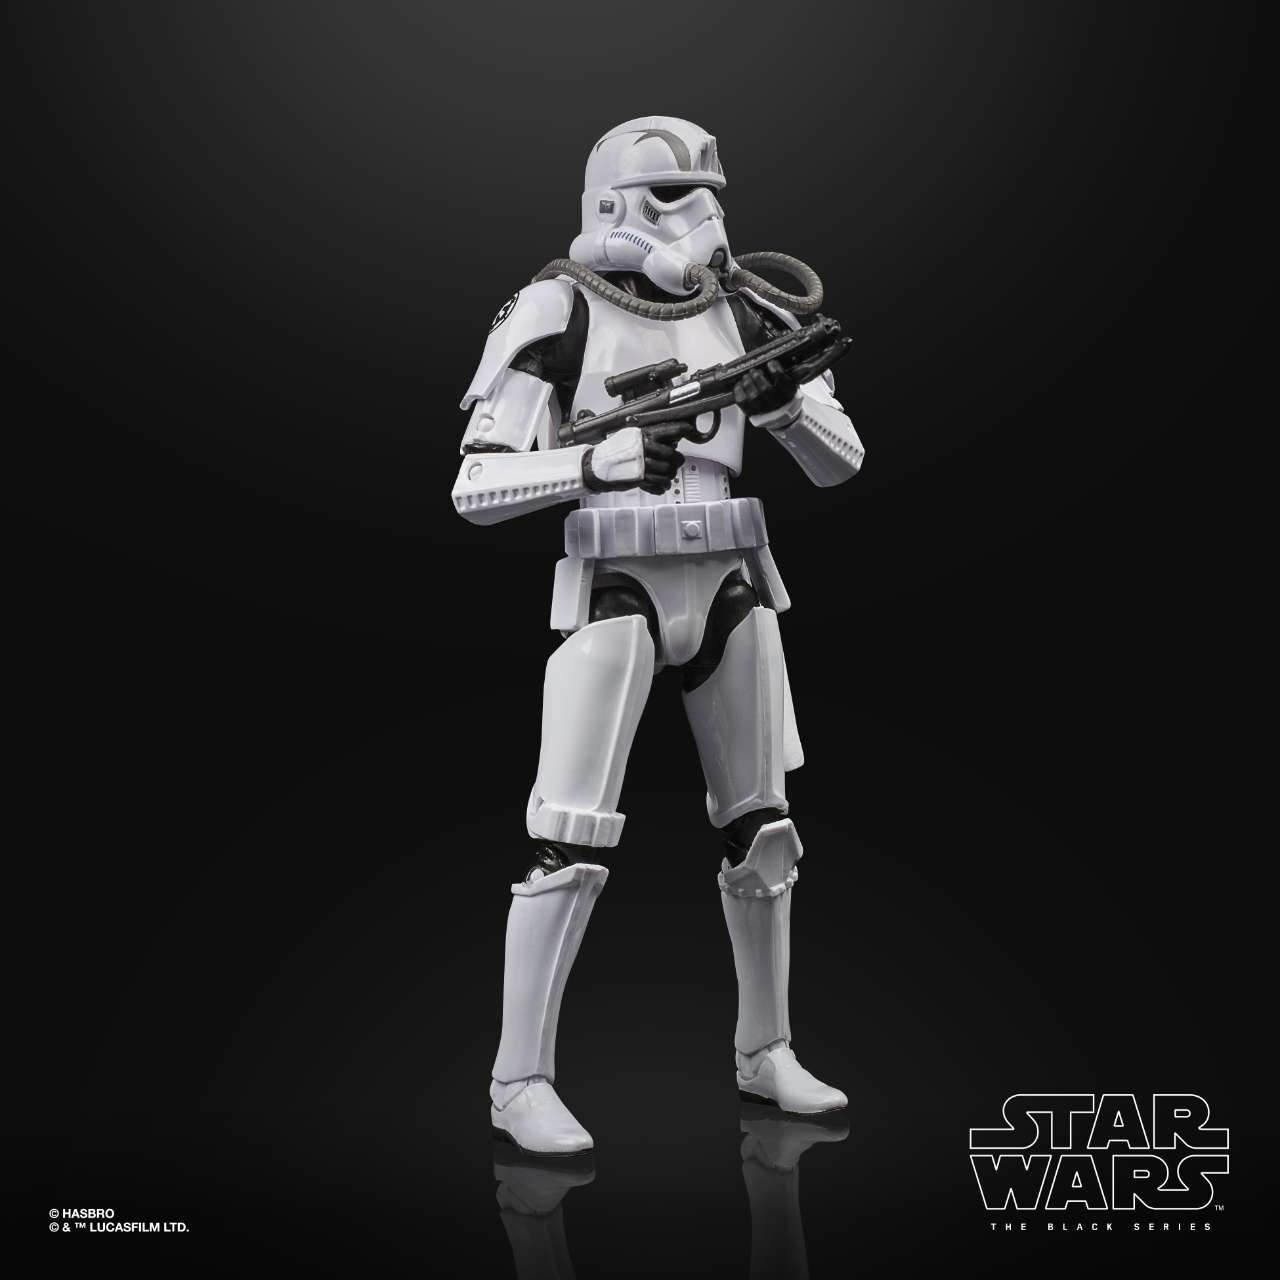 Star Wars Gaming Greats Black Series Imperial Rocket Trooper Exclusive Launches Today